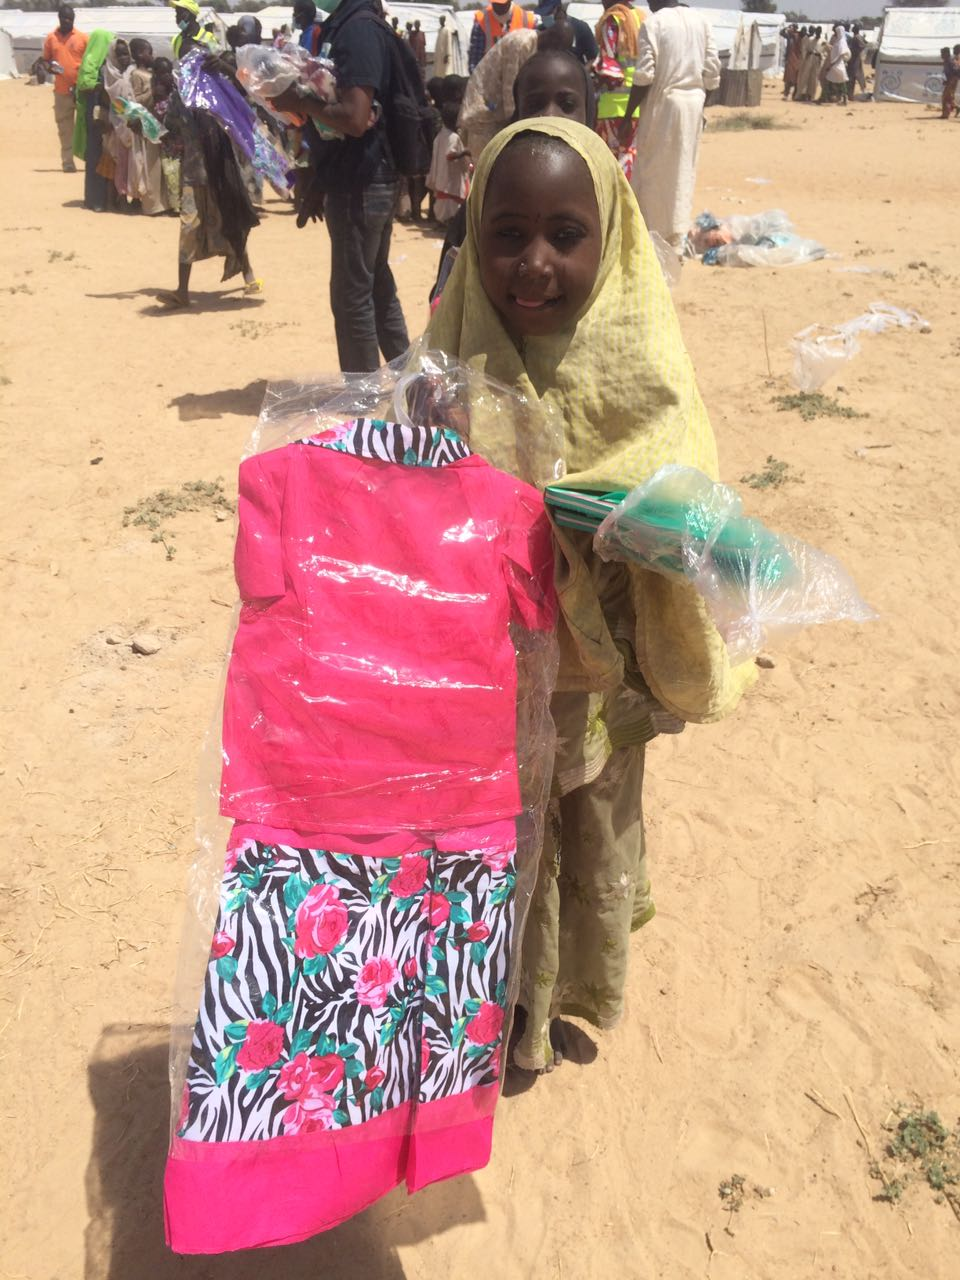 IDP collects gift